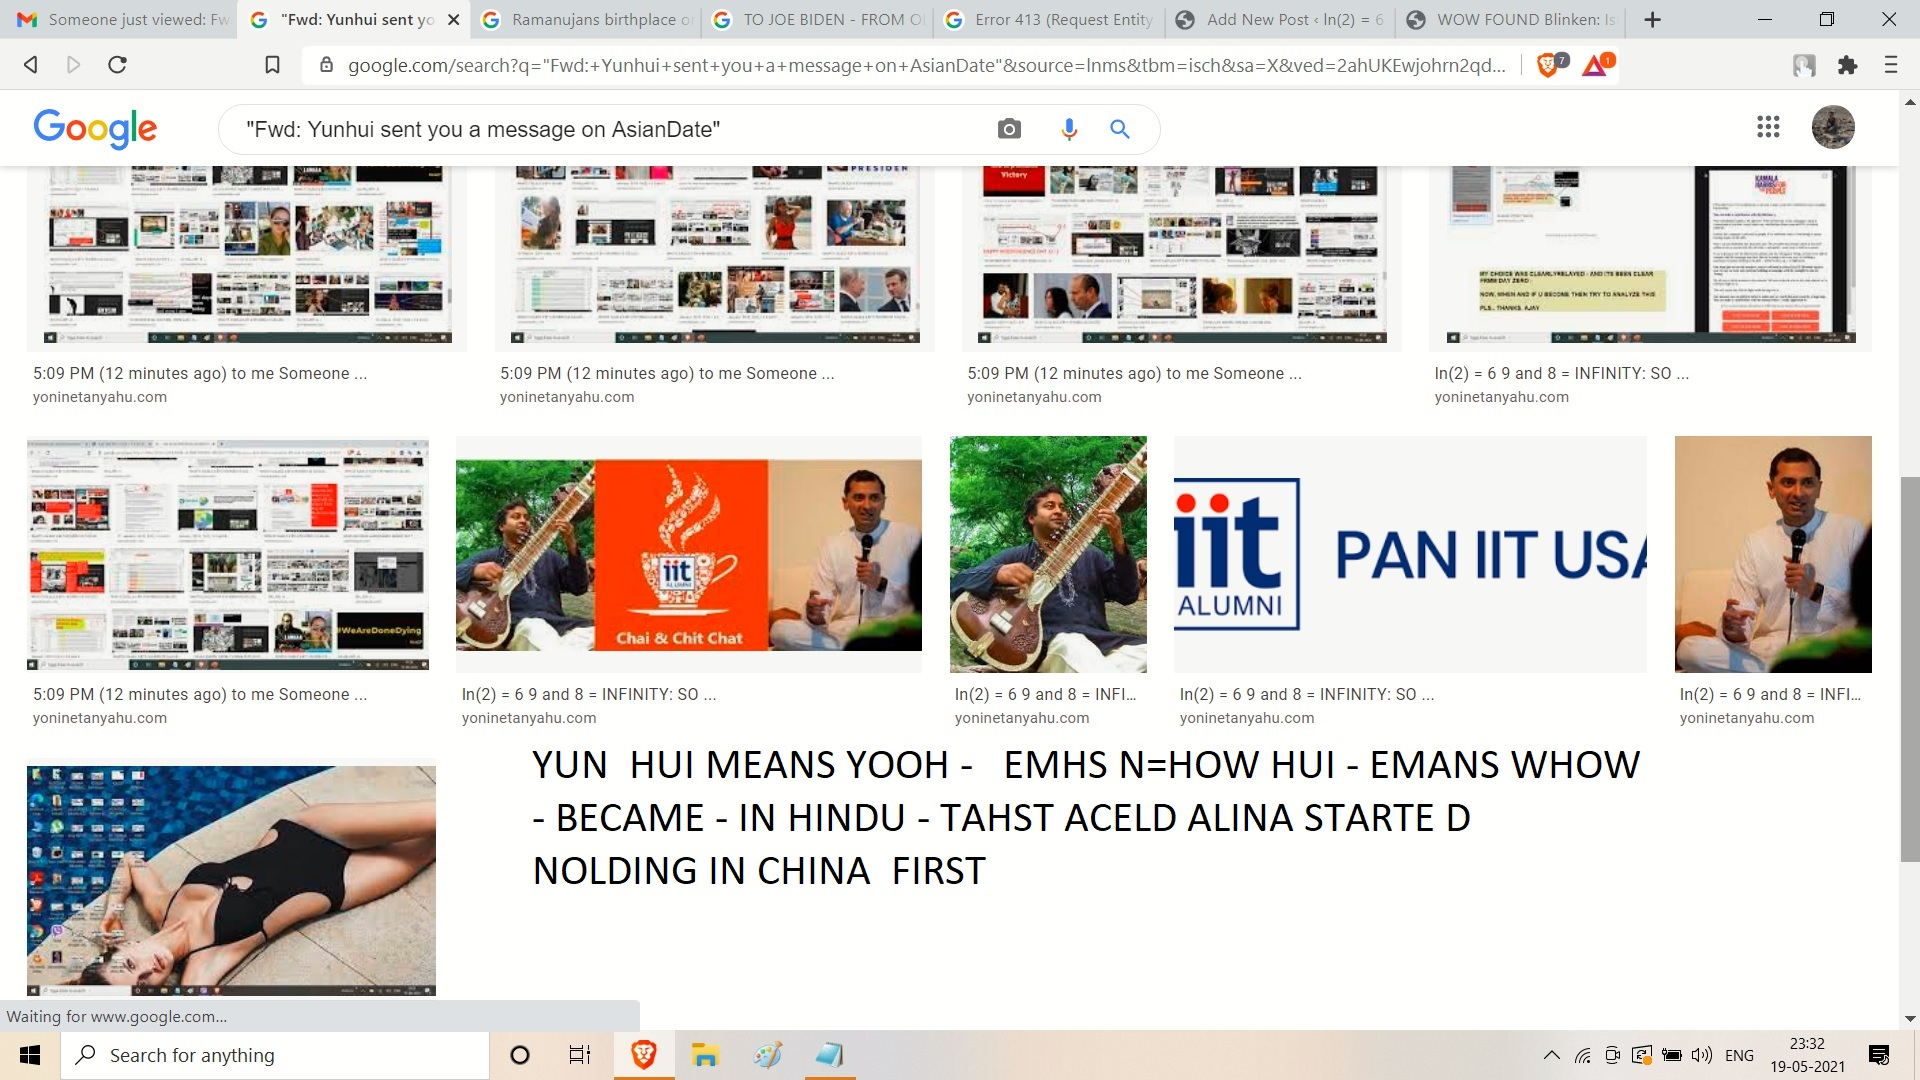 YUN HUI MEANS YOOH - EMHS N=HOW HUI - EMANS WHOW - BECAME - IN HINDU - TAHST ACELD ALINA STARTE D NOLDING INCHINA FIRST